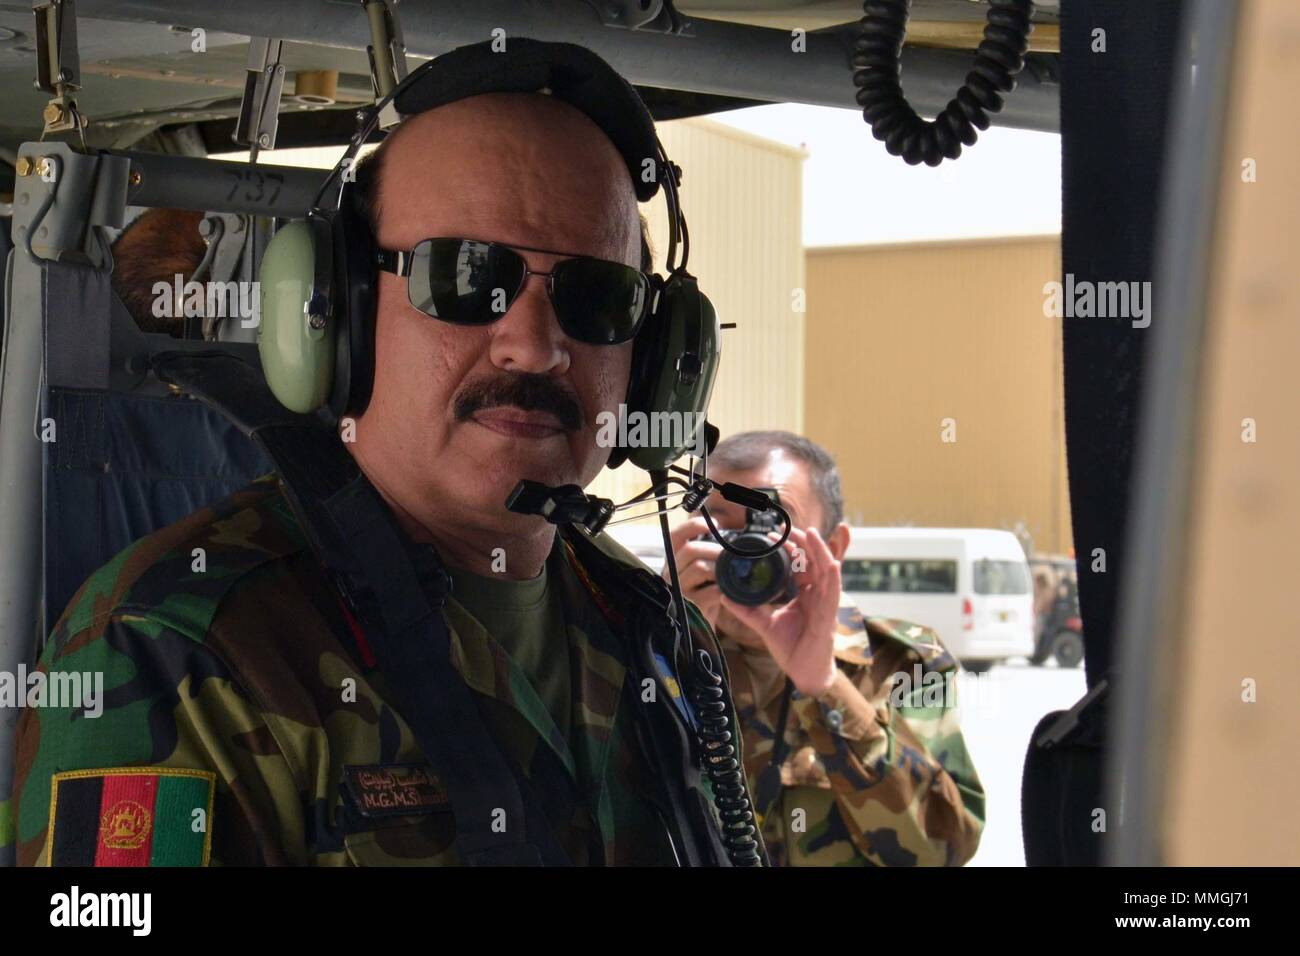 KANDAHAR AIRFIELD (May 8, 2018) -- Maj. Gen. Mohammad Shoaib, Afghan Air Force commander, prepares for a flight in a UH-60 Black Hawk May 8, 2018, Kandahar Air base, Afghanistan. The lead aircraft for the flight was operated by Afghan air crew members who had graduated from Mission Qualification Training earlier that day. (U.S. Air Force photo/1st Lt. Erin Recanzone) - Stock Image